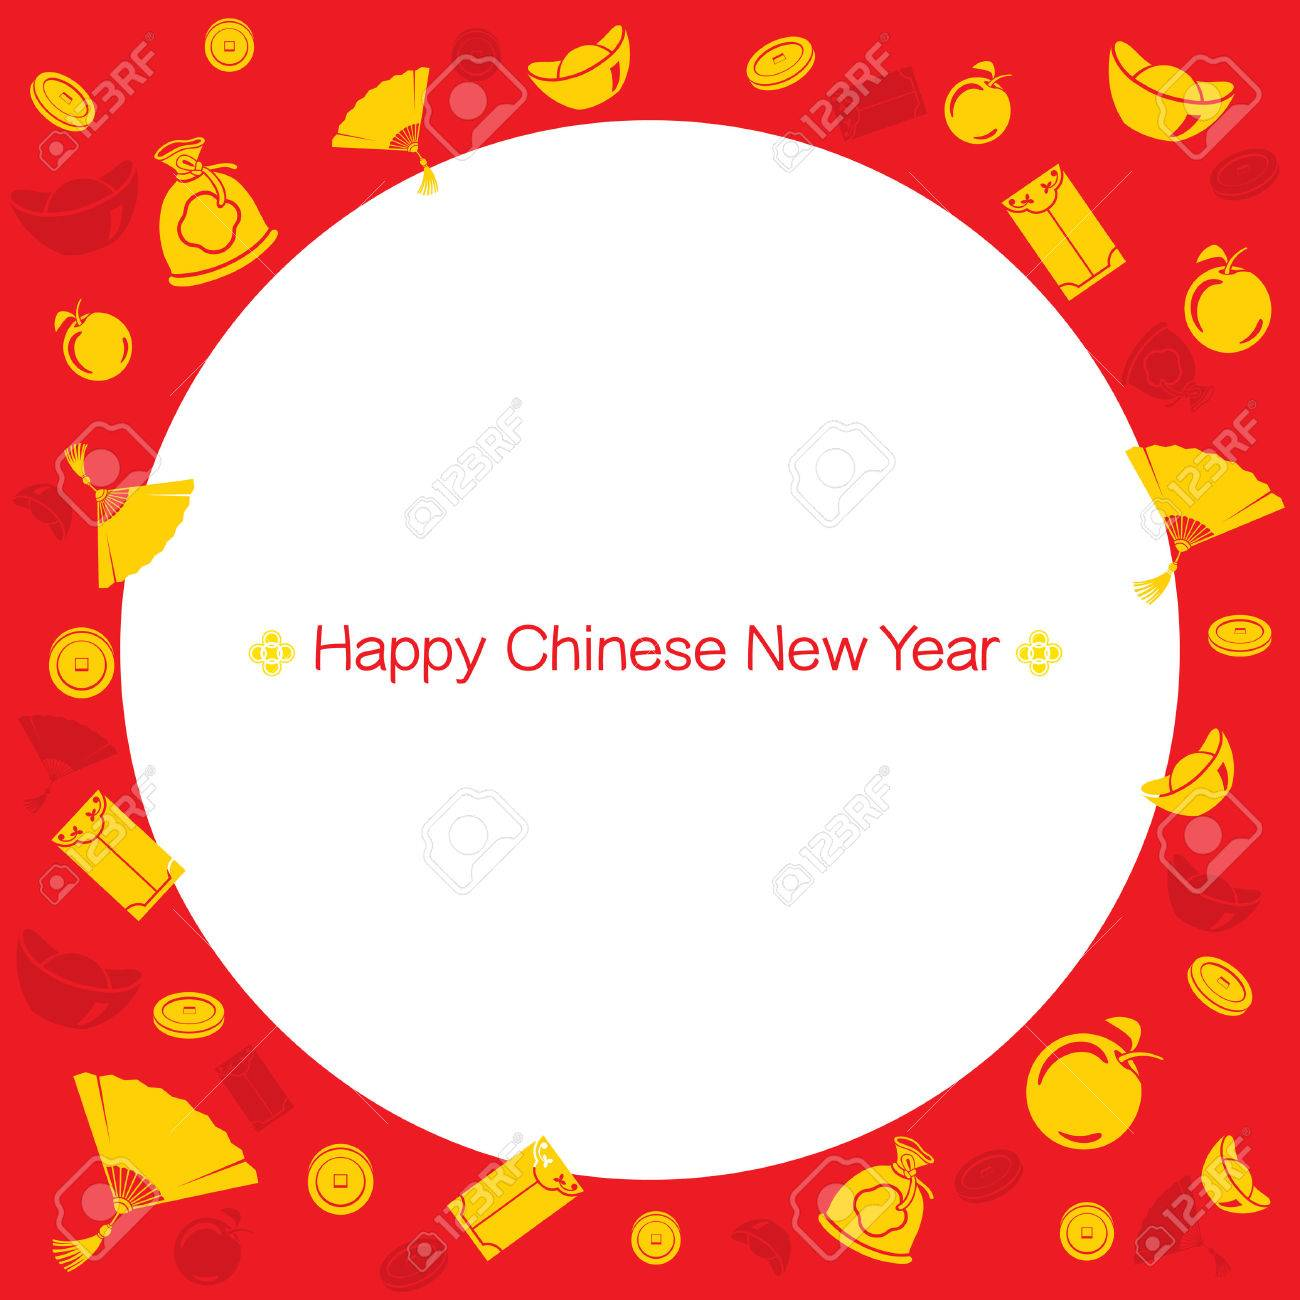 chinese new year border with icons traditional celebration china happy chinese new year